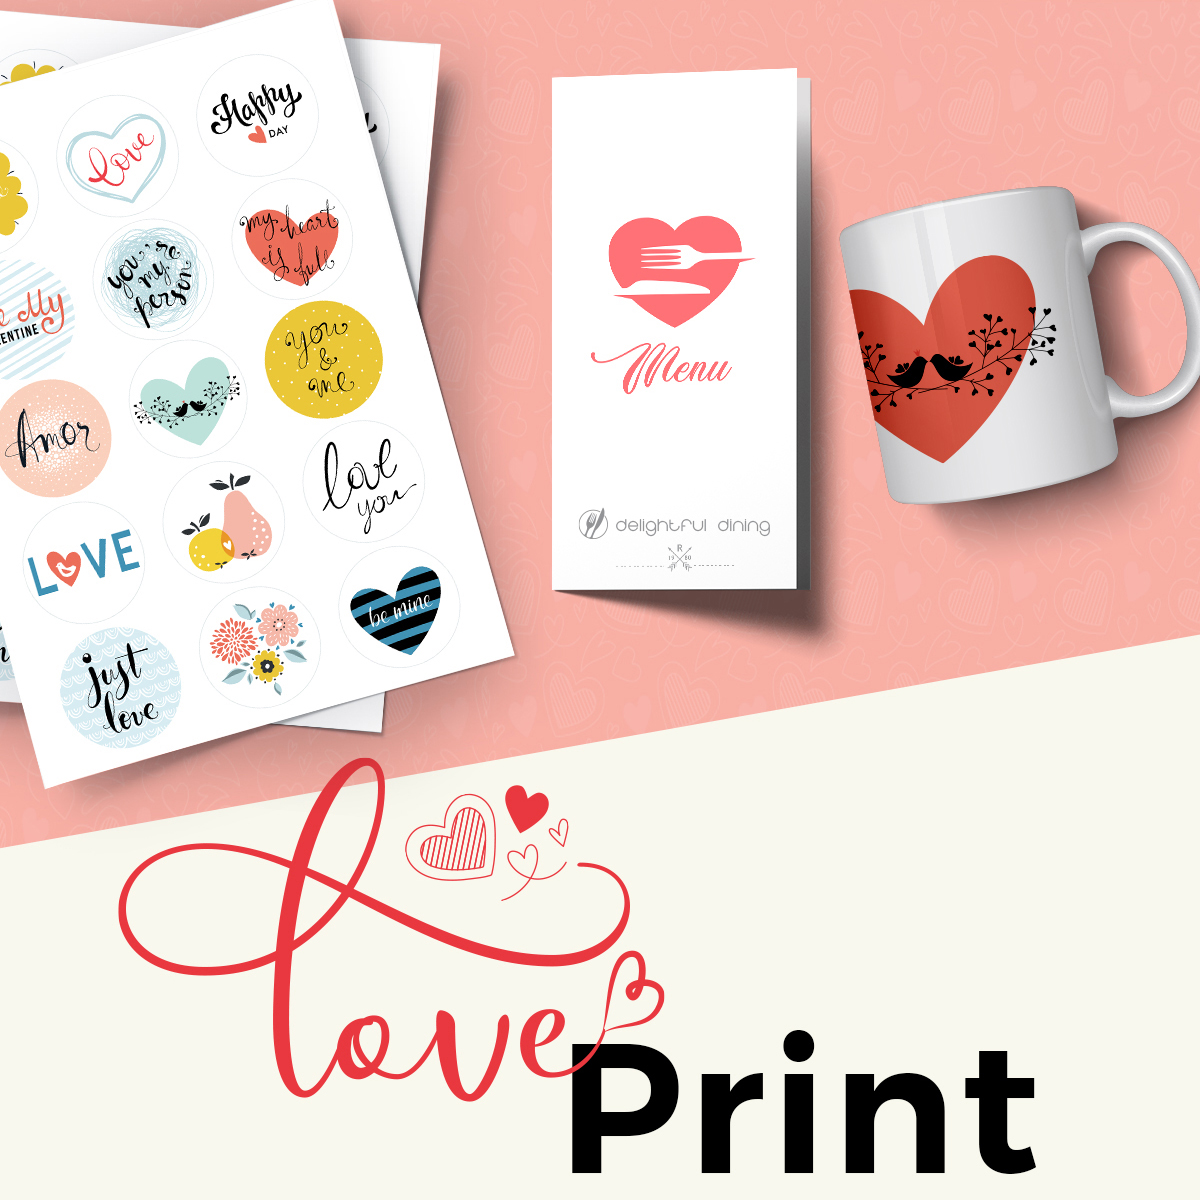 Fall in love again with print